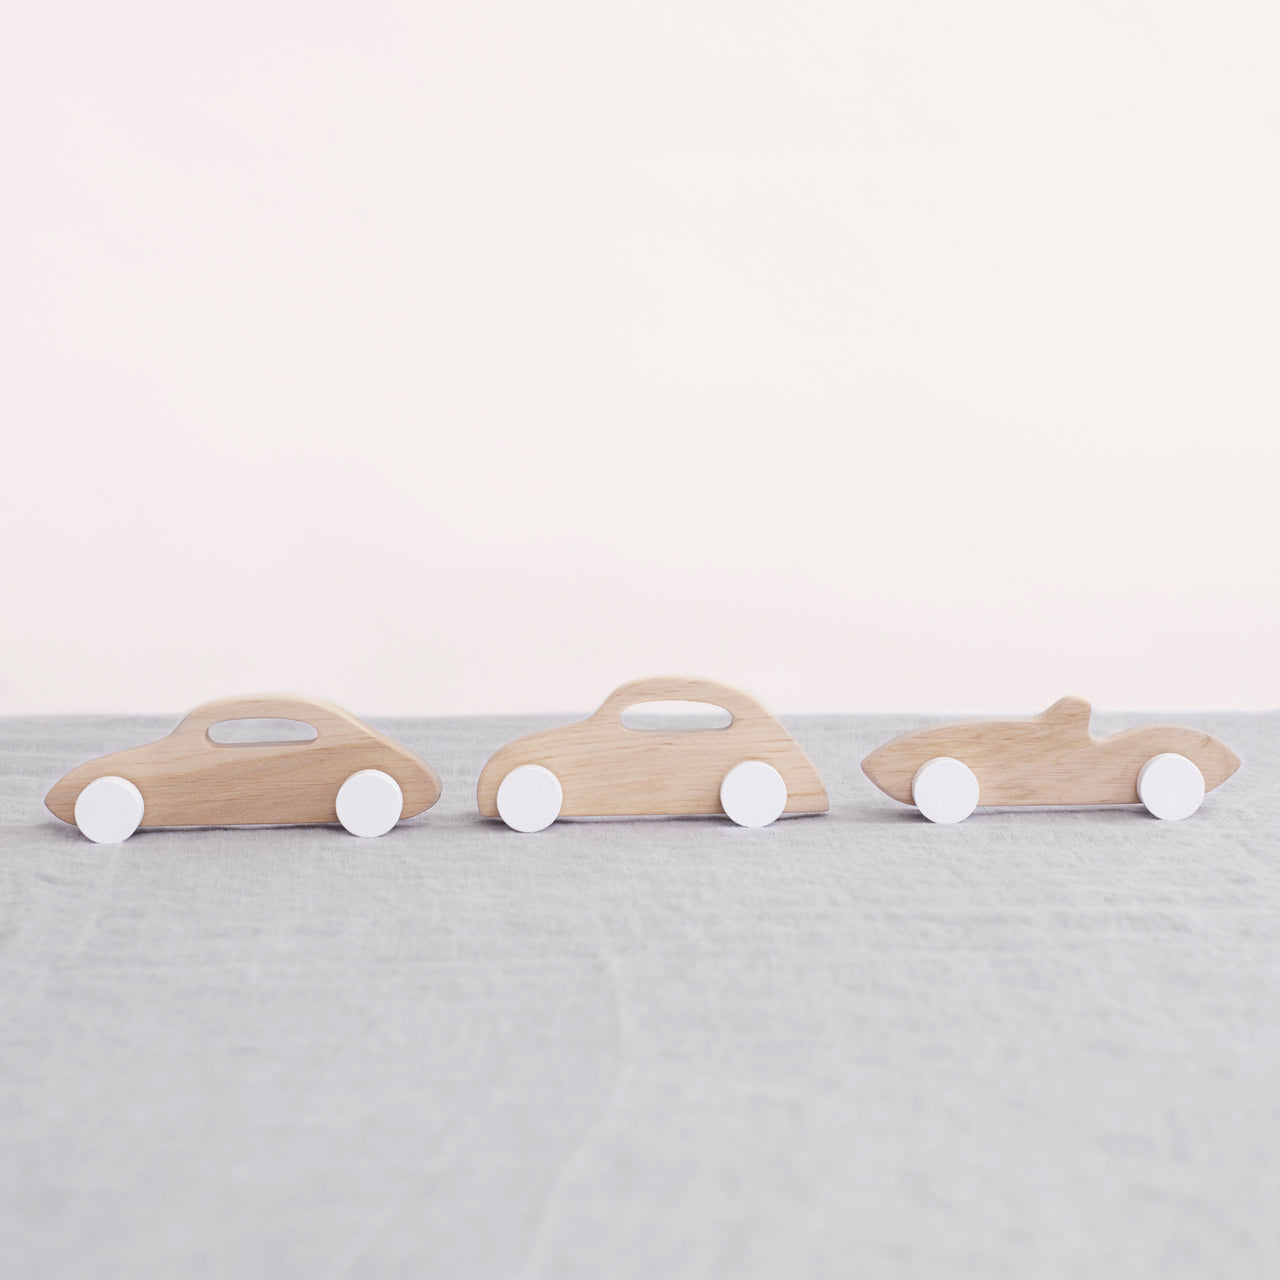 Pinch Toys - Wooden Toys - Sports Cars - Eco Toys - Organic Toys - Wooden Love - Natural Home - Childhood - Wooden Toys - Nordic Toys - Handmade Toys - Handcrafted